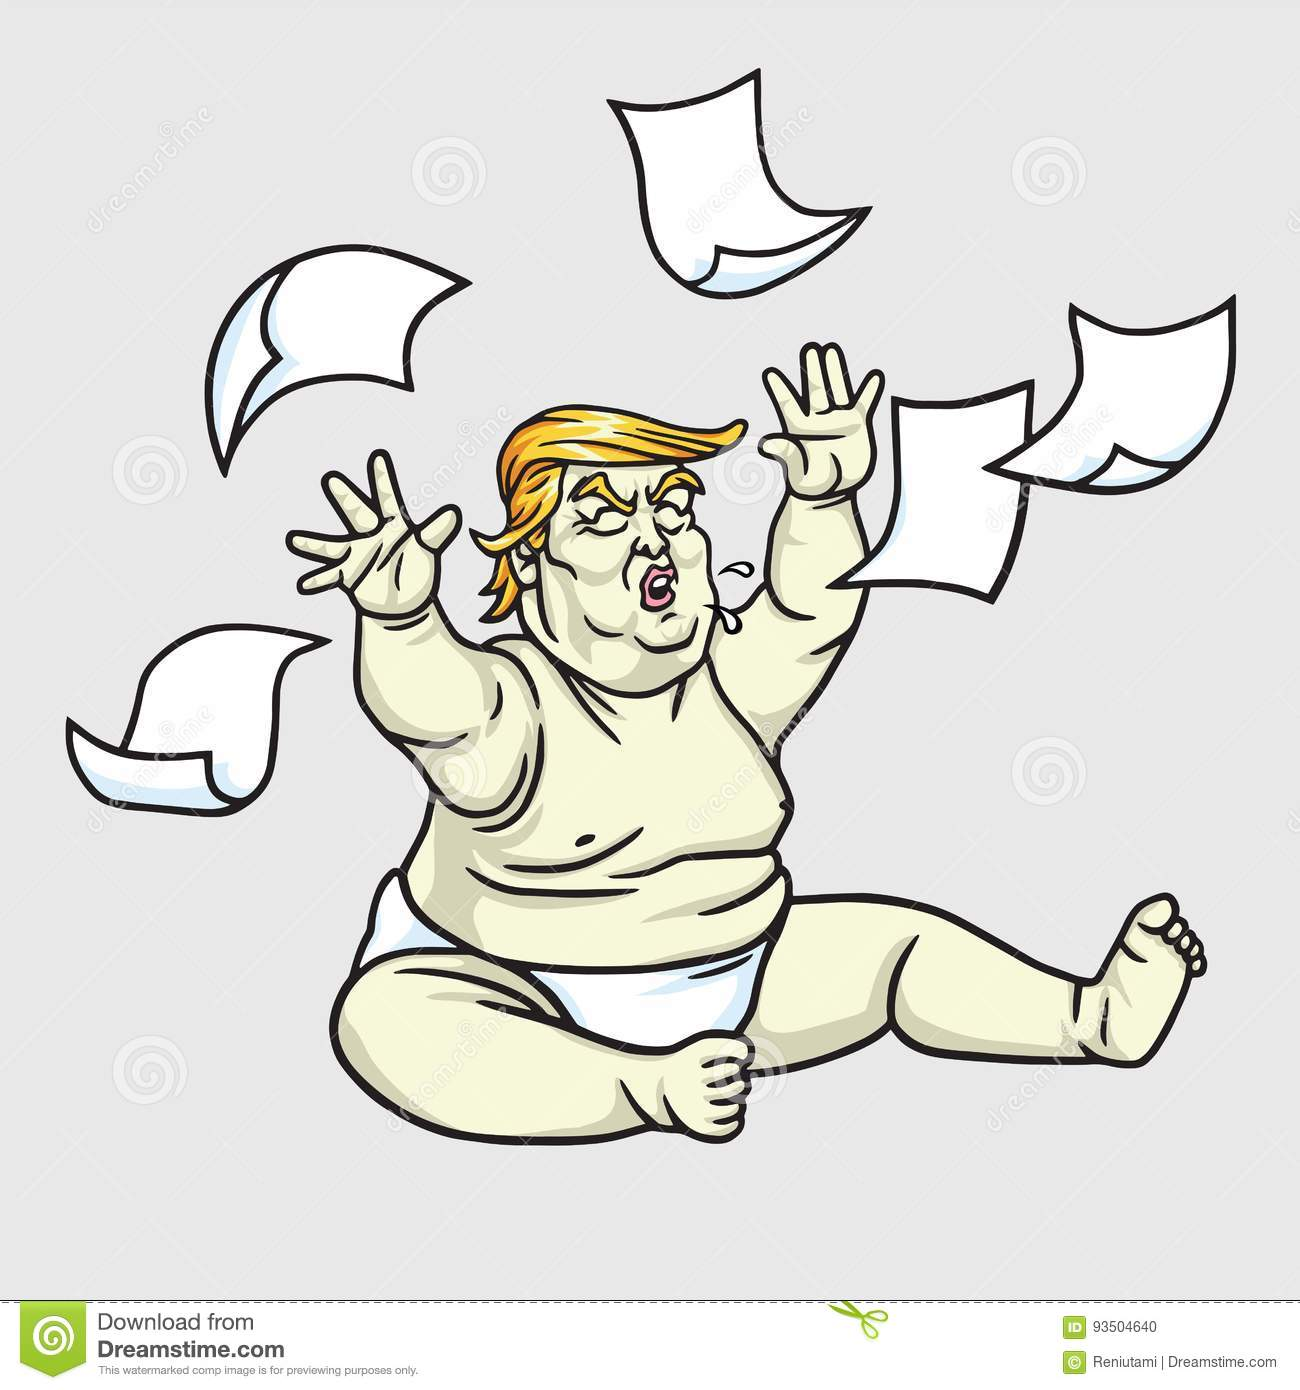 donald trump the big baby with messy papers. june 1, 2017 editorial